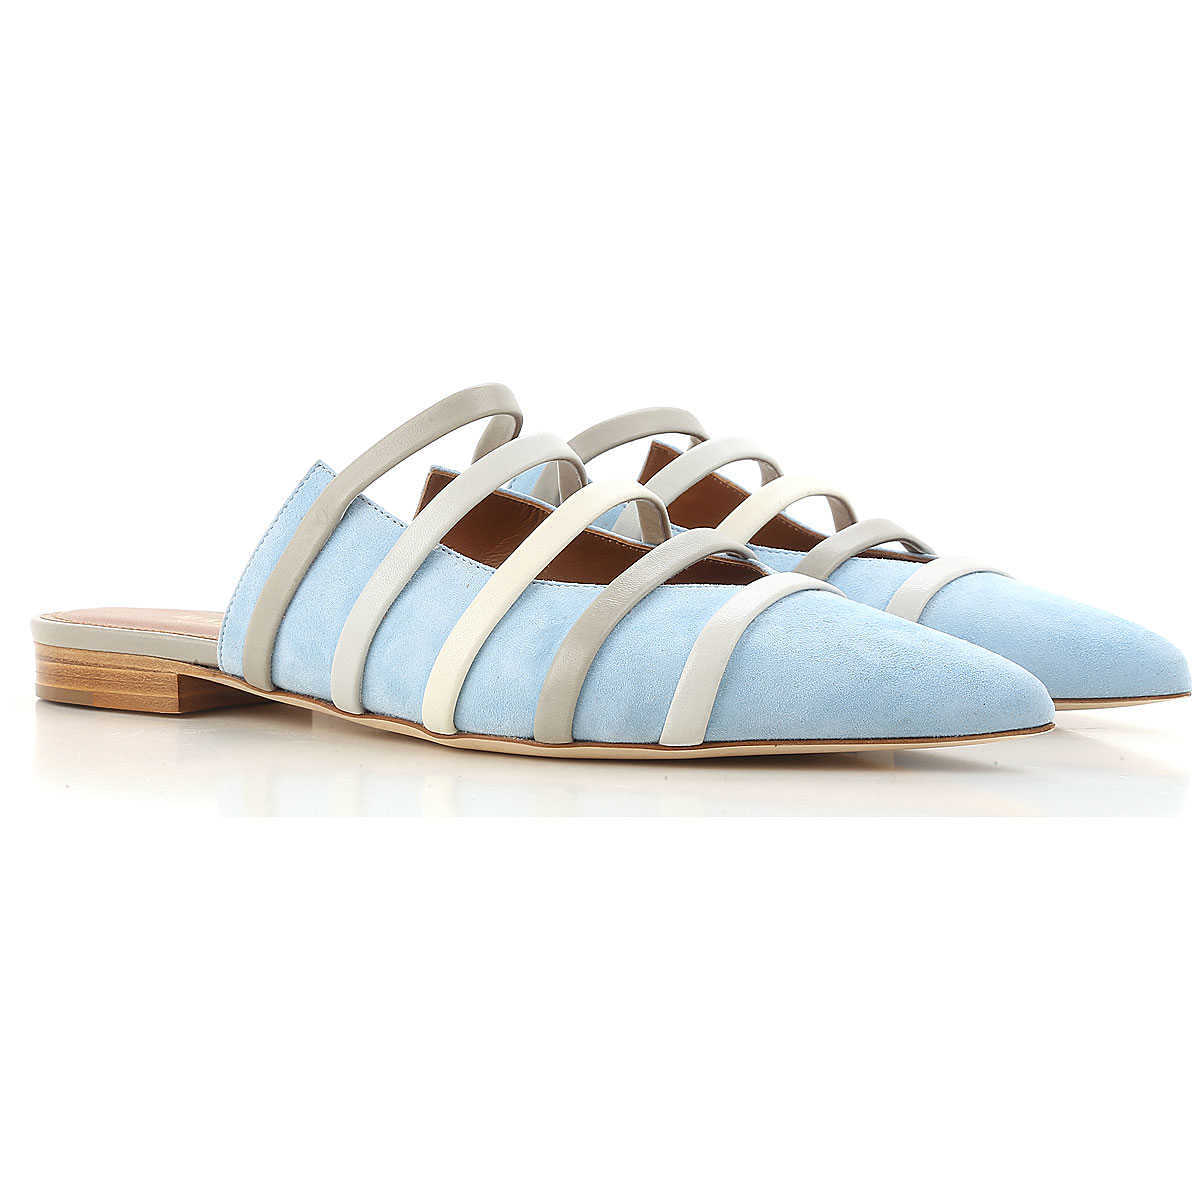 Malone Souliers Ballet Flats Ballerina Shoes for Women in Outlet Powder Blue Canada - GOOFASH - Womens BALLERINAS